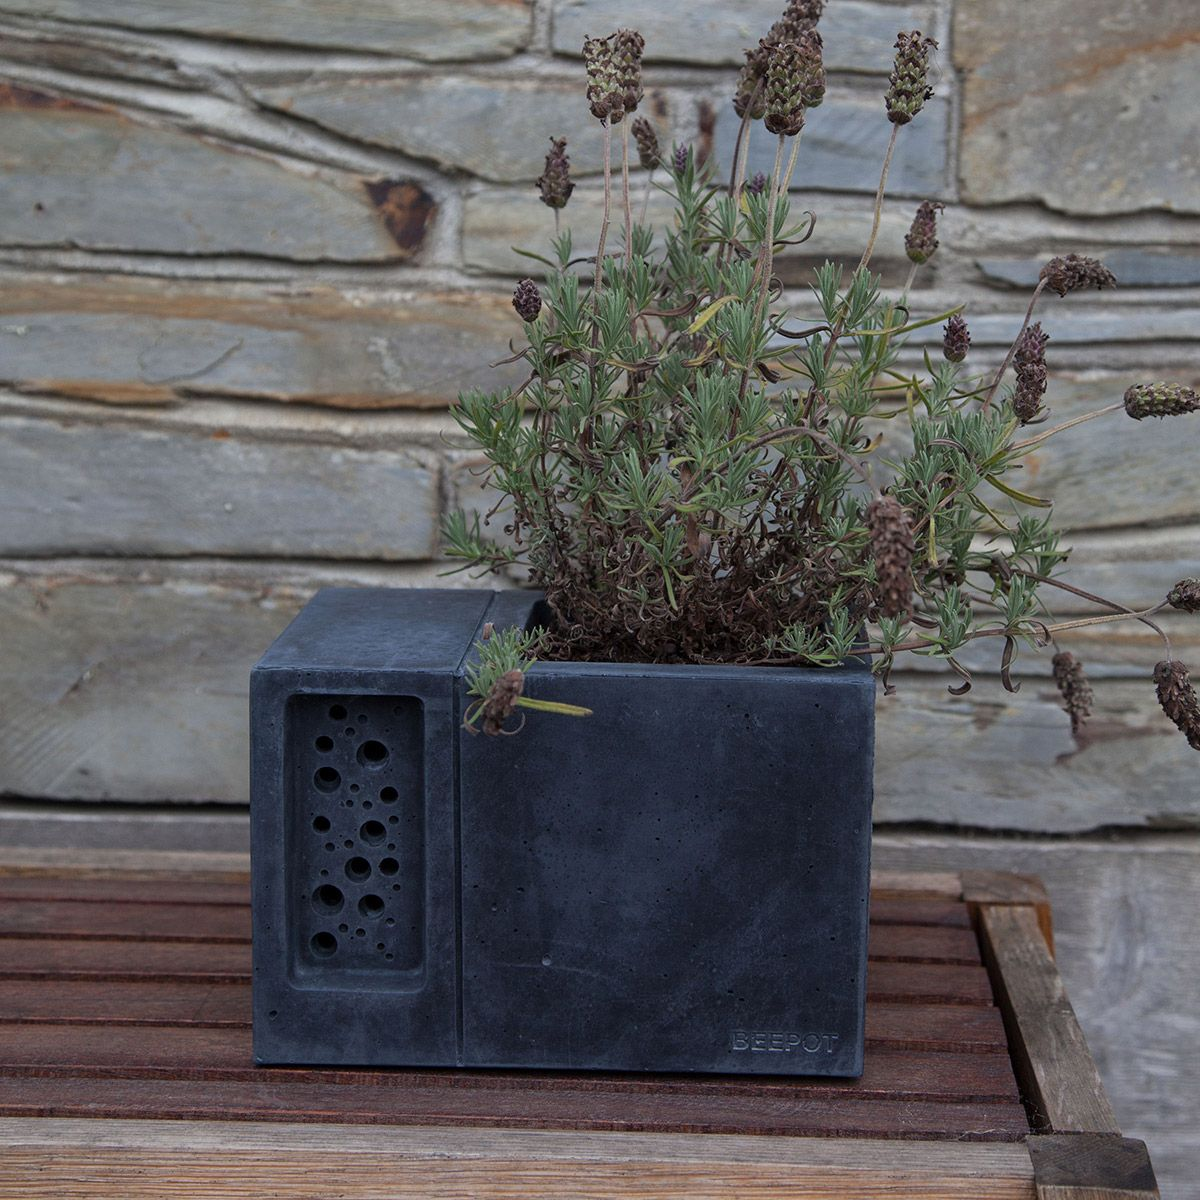 The Beepot Bee Hotel Is A Beautiful Concrete Planter Inspired By The Award  Winning Bee Brick, Only This Time Weu0026 Added A Diner On The Bees Doorstep!